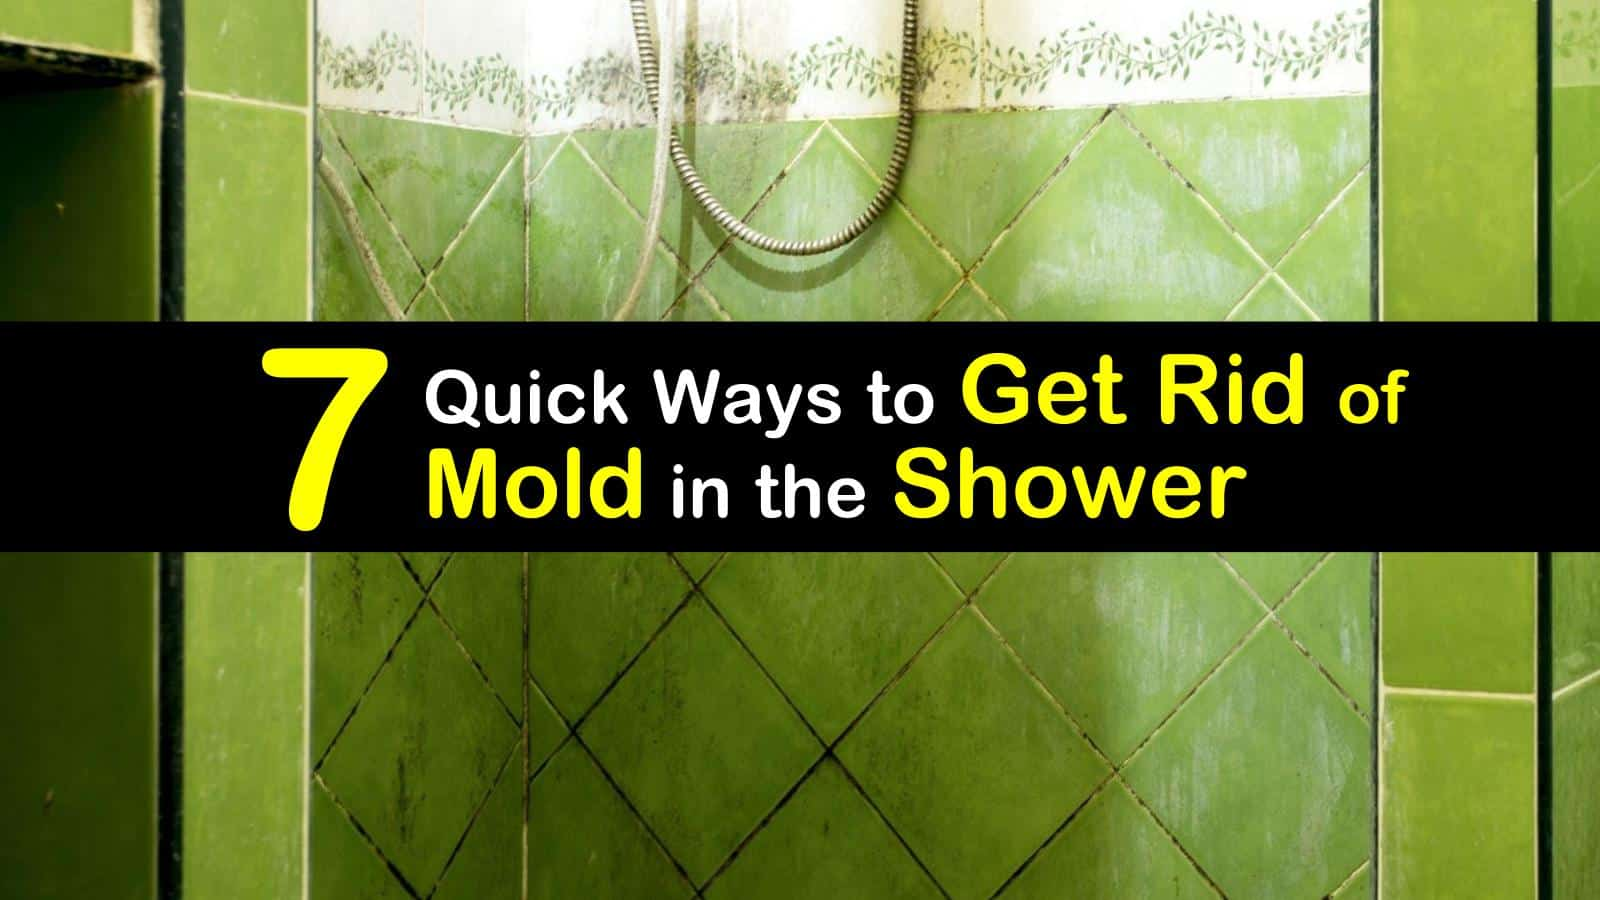 mold in the shower titleimg1